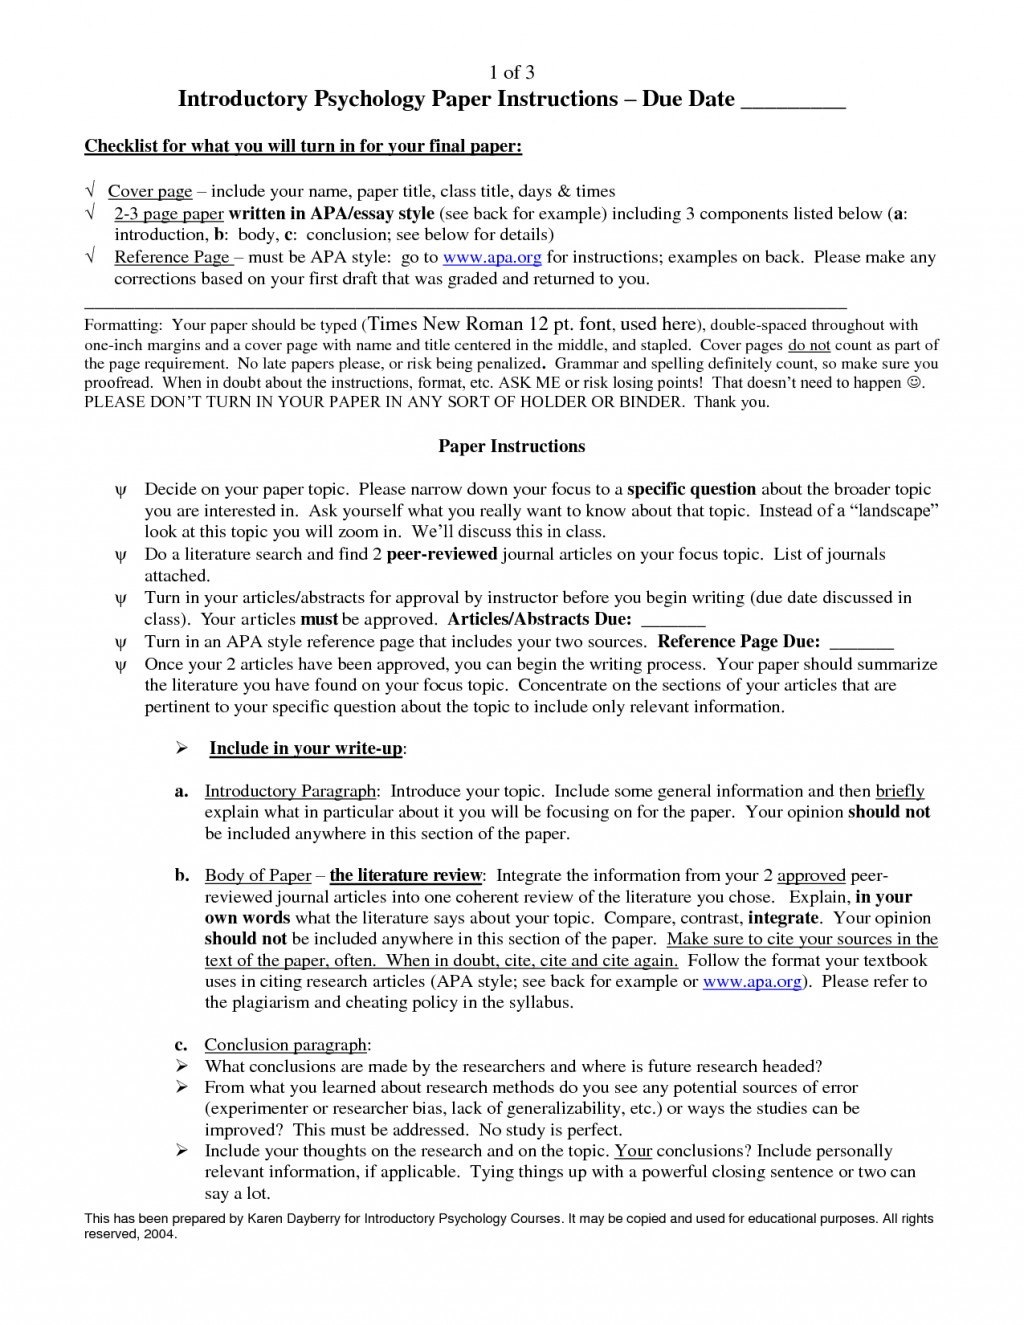 003 Psychology Research Paper Topics List Example Awesome Topic Ideas Large